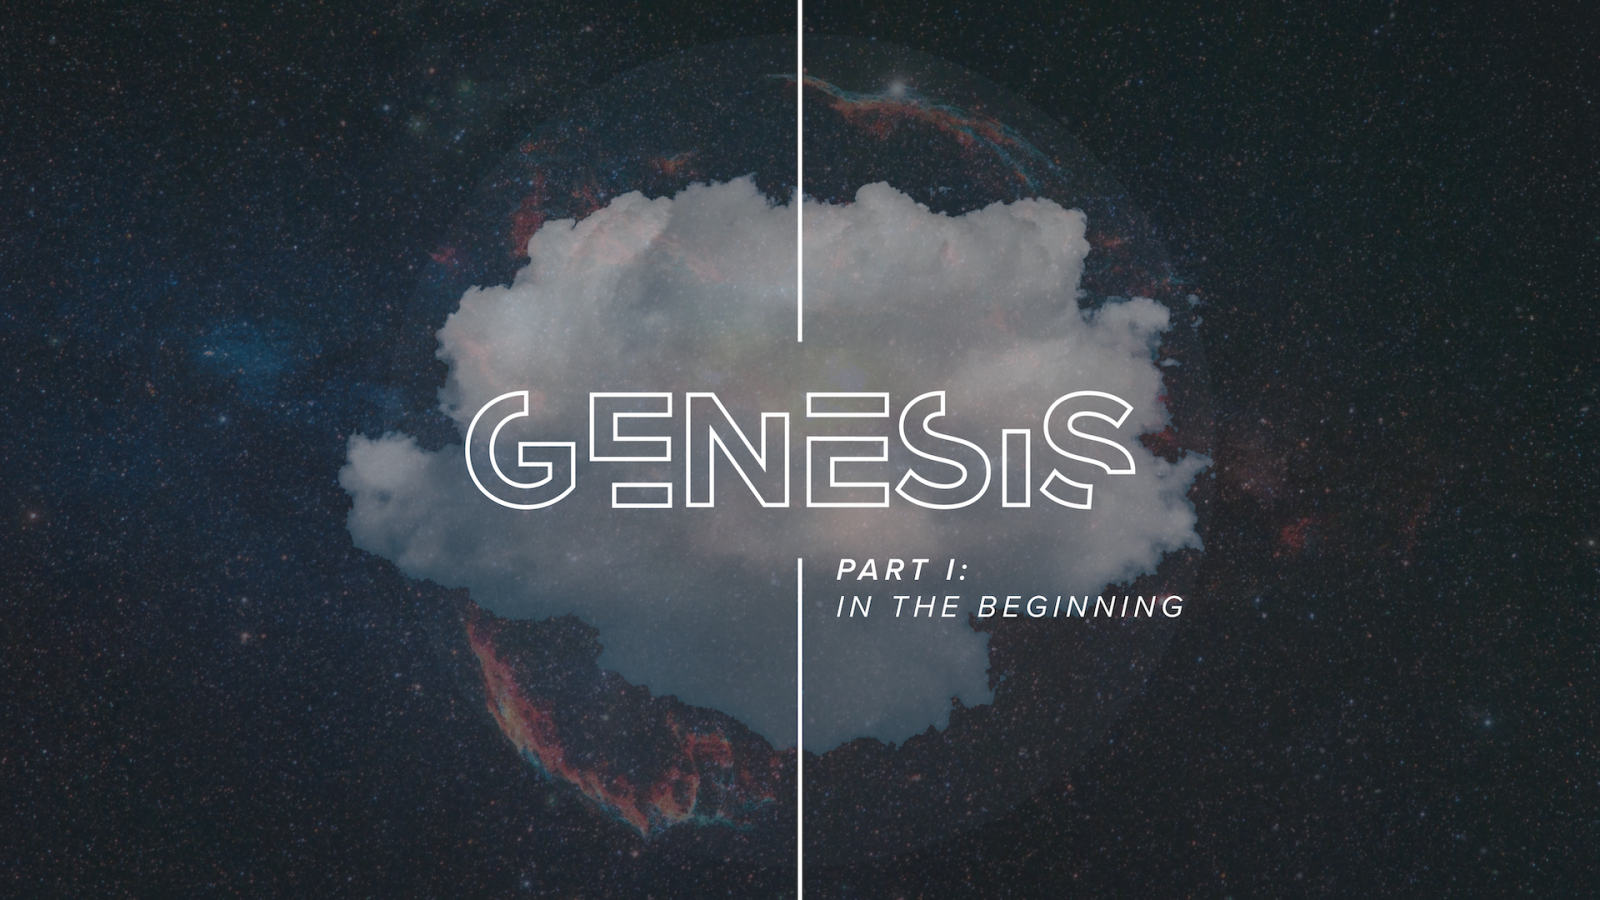 Genesis: Part I - In The Beginning